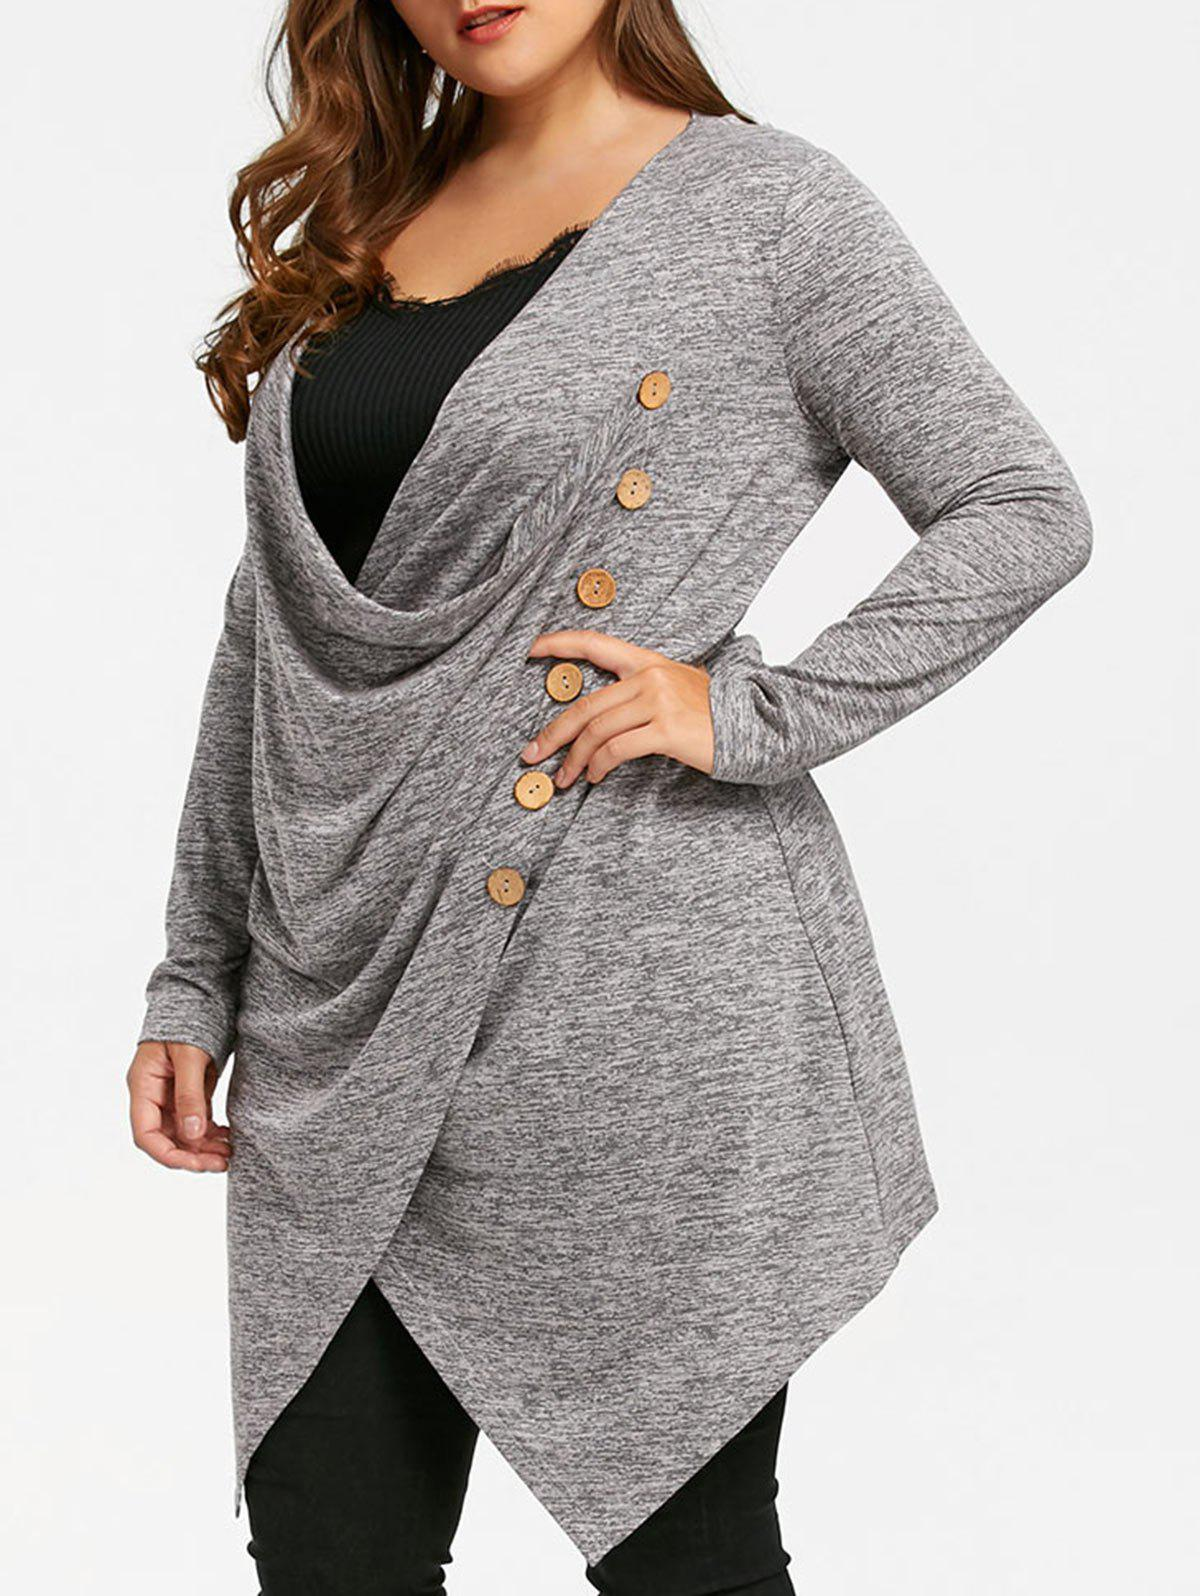 Plus Size Crossover Marled Tunic Top - GRAY 4XL